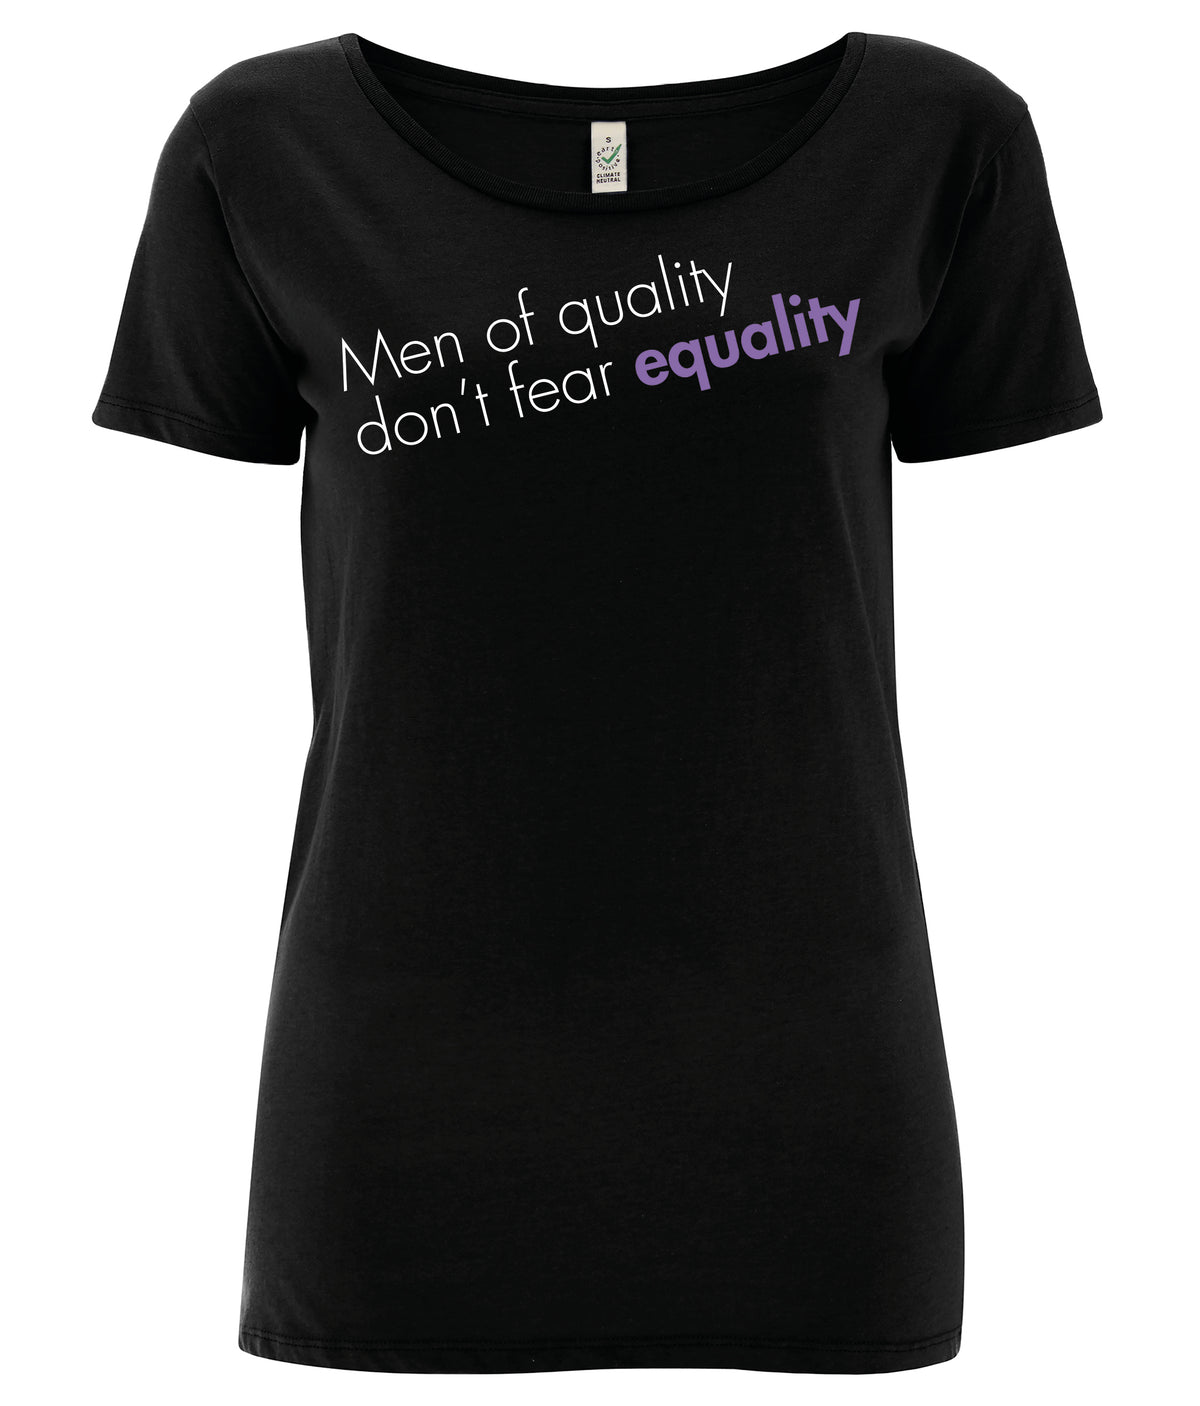 Men Of Quality Don't Fear Equality Open Neck Organic Feminist T Shirt Black